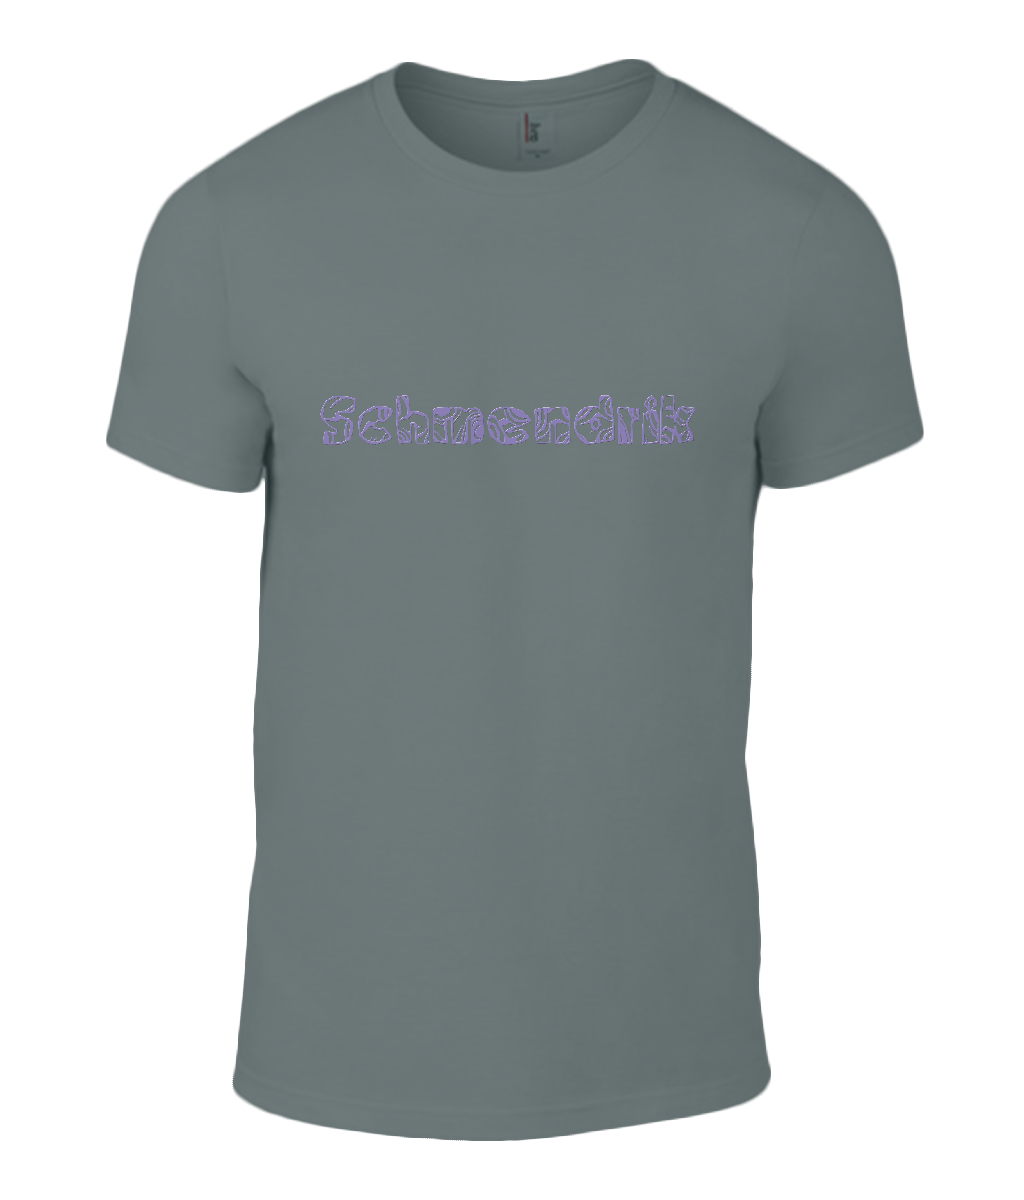 Round Neck T-Shirt - Schmendrick - Lokshen Pudding UK - Grey